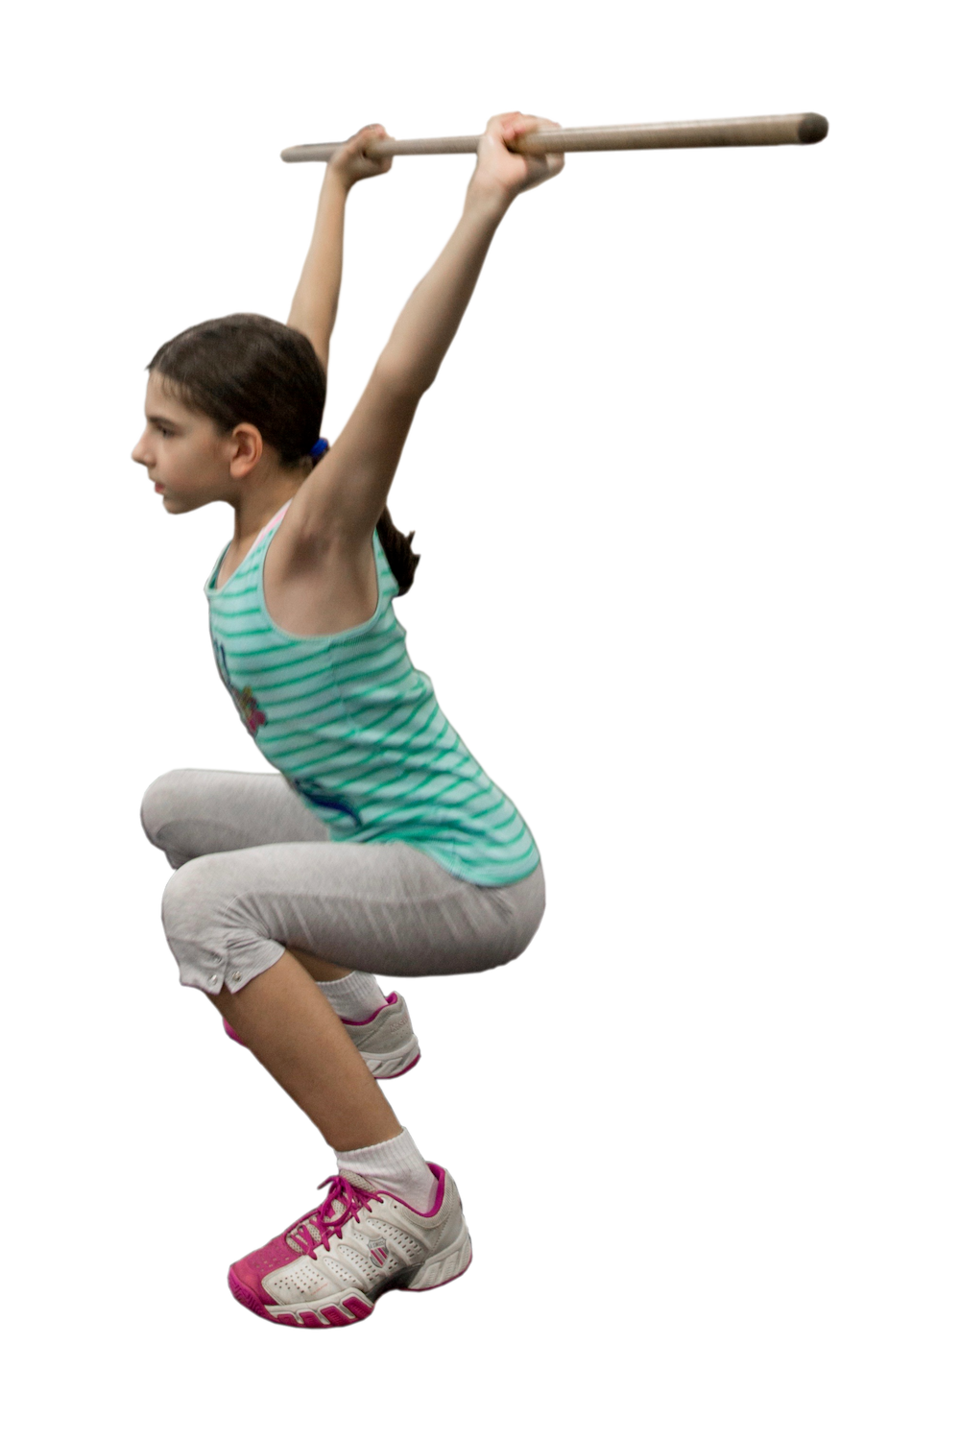 Benefits of Junior Tennis Strength Development Program